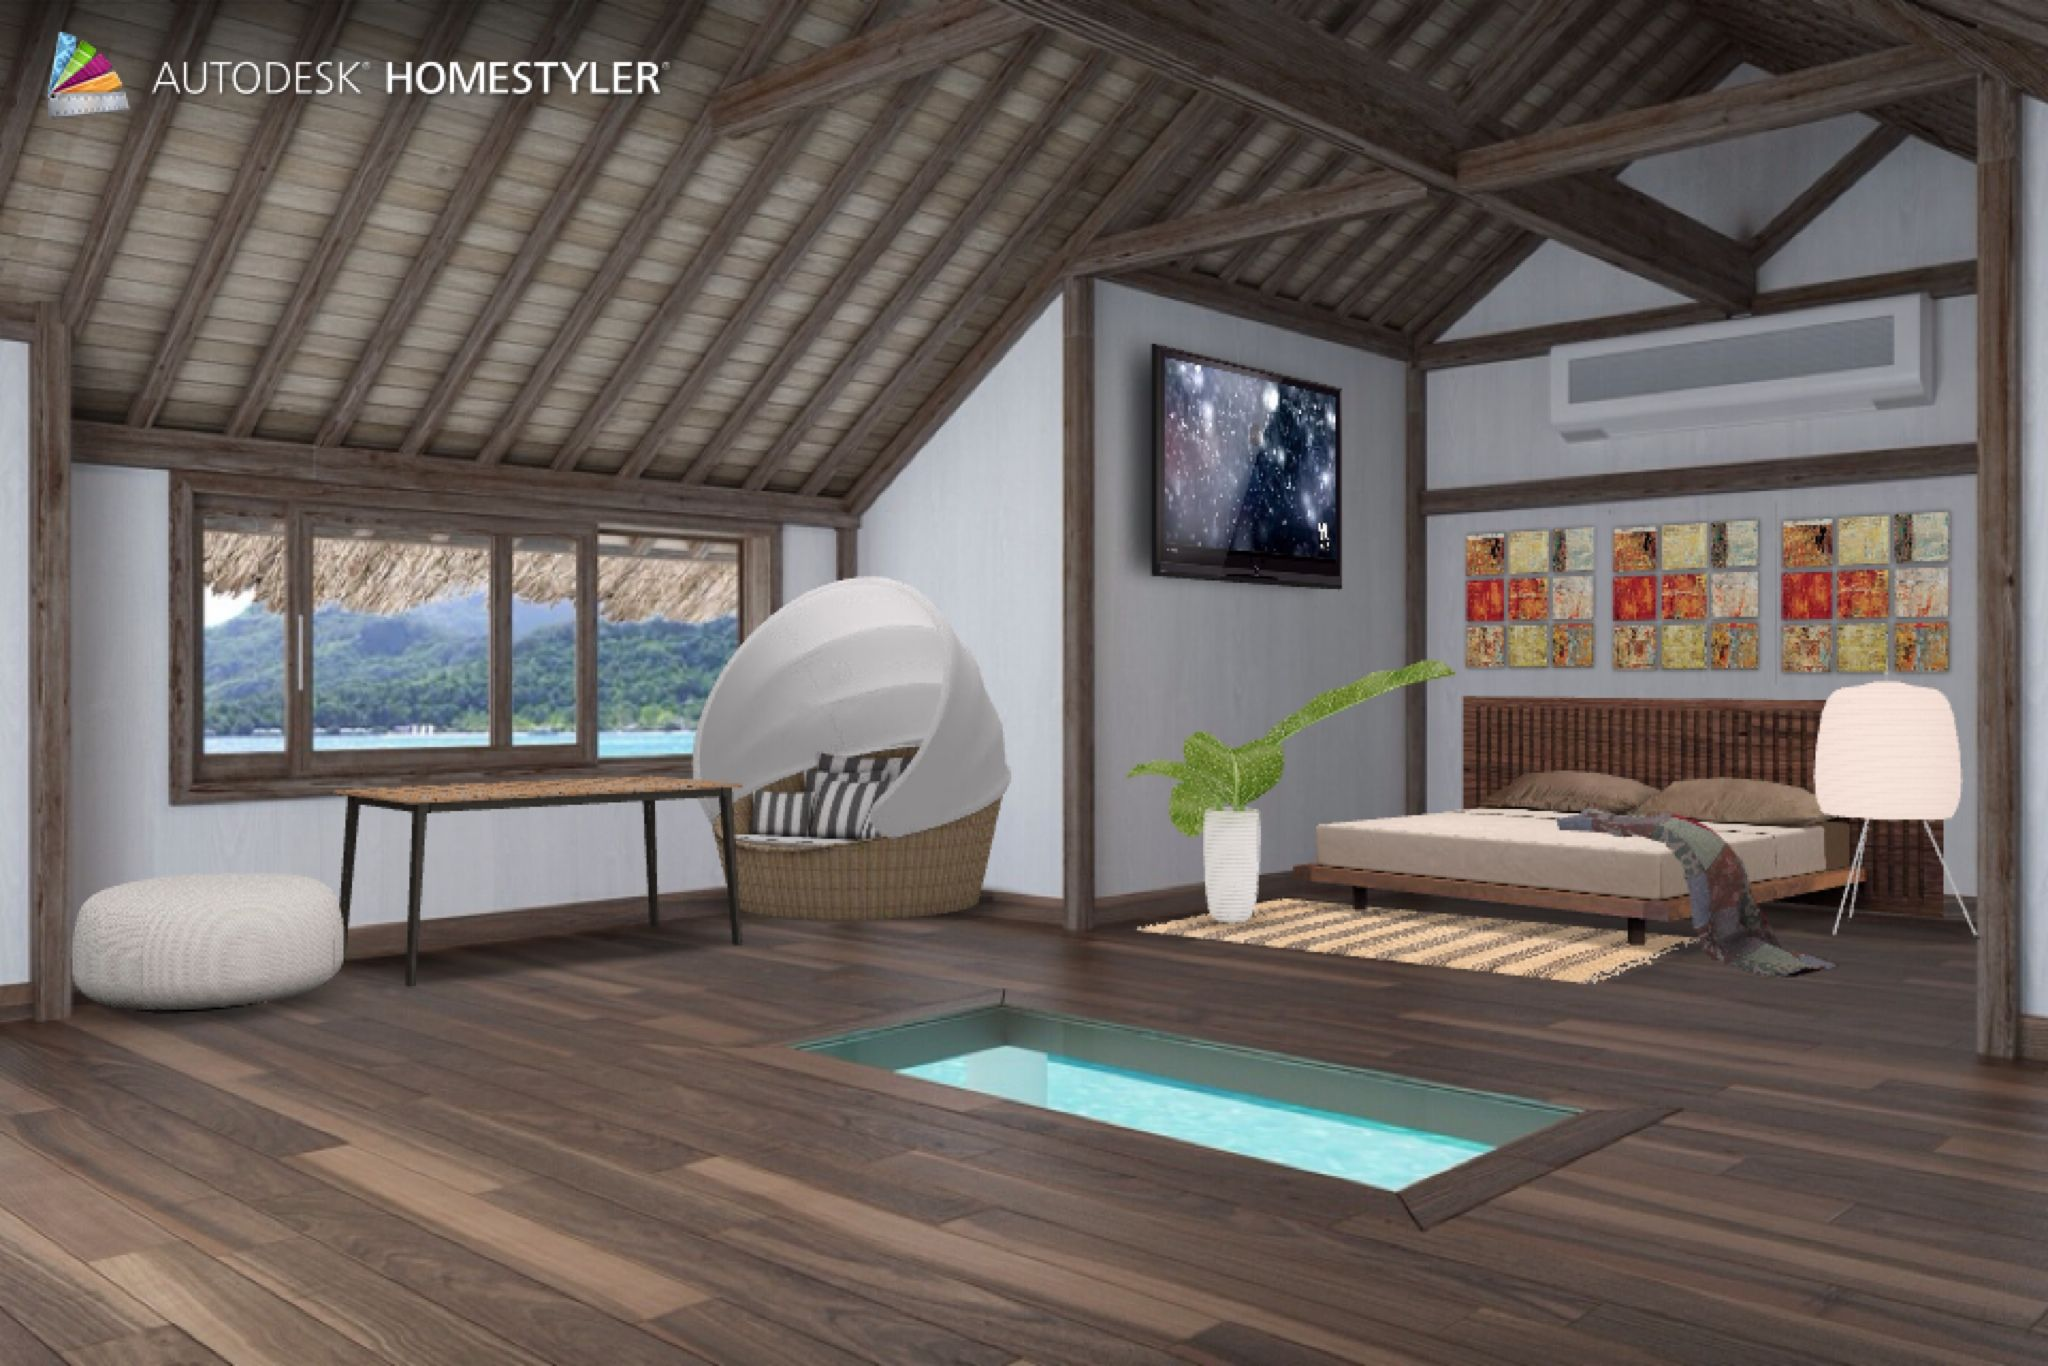 "Check out my #interiordesign ""First room"" from #Homestyler http://autode.sk/1iaewea"